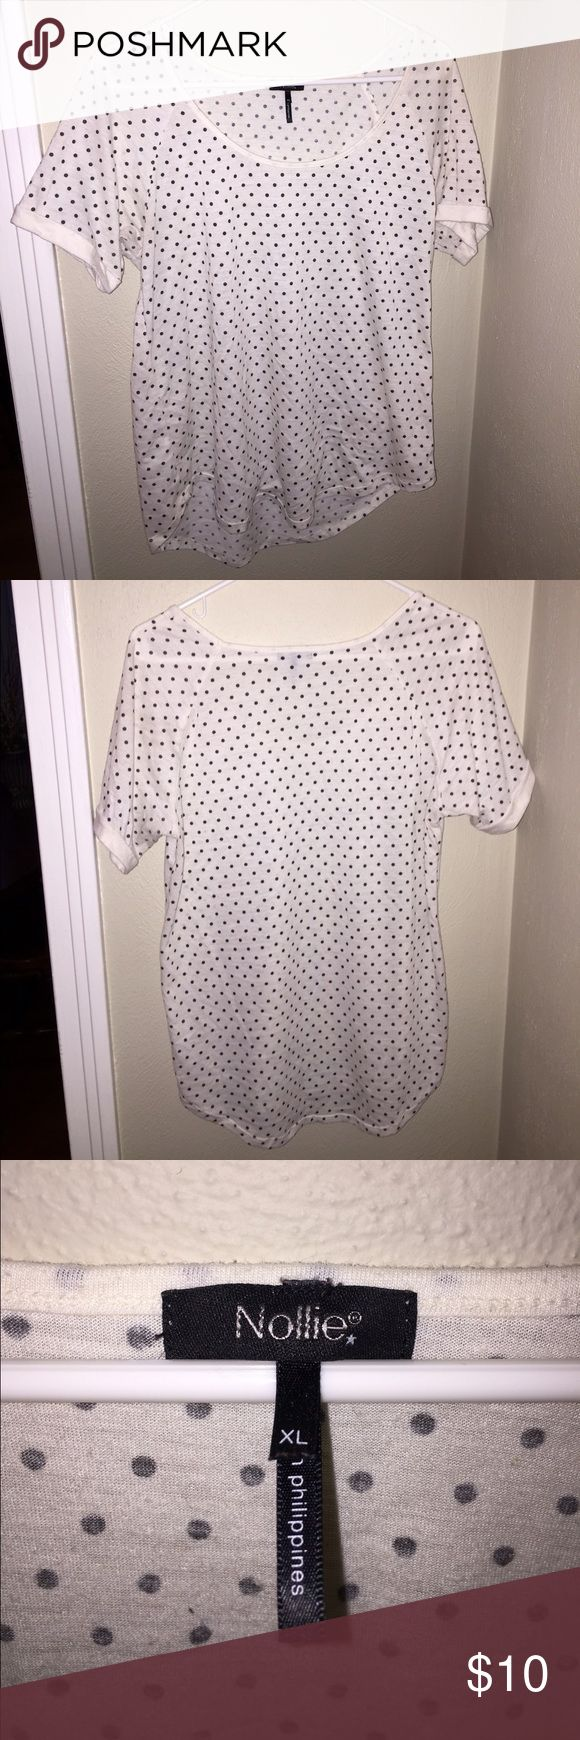 XL, polka dot, short sleeve, tshirt, Nollie XL, black and white, polka dots, cuffed short sleeves, tshirt, crew neck, Nollie, only worn a few times Nollie Tops Tees - Short Sleeve